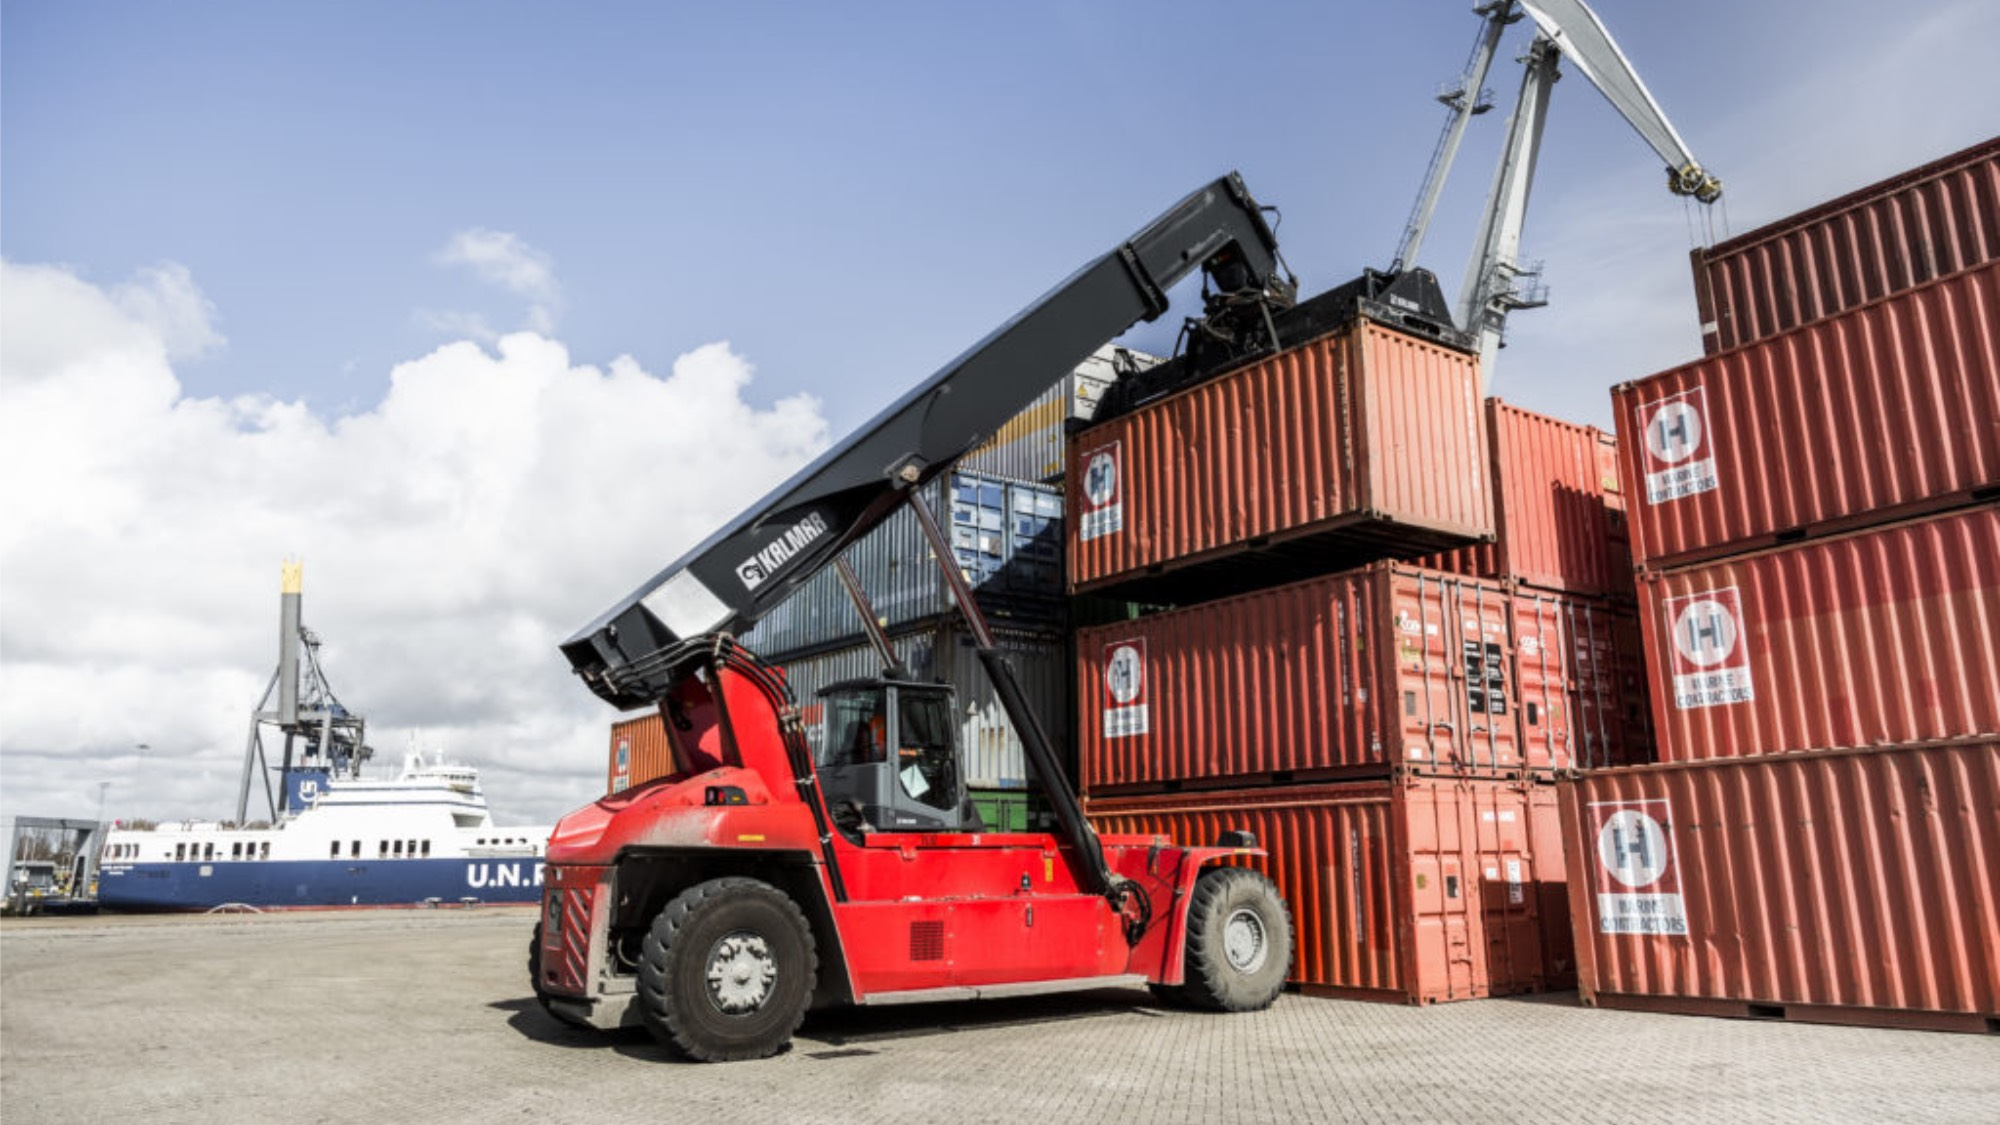 A red reachstacker lifting a container